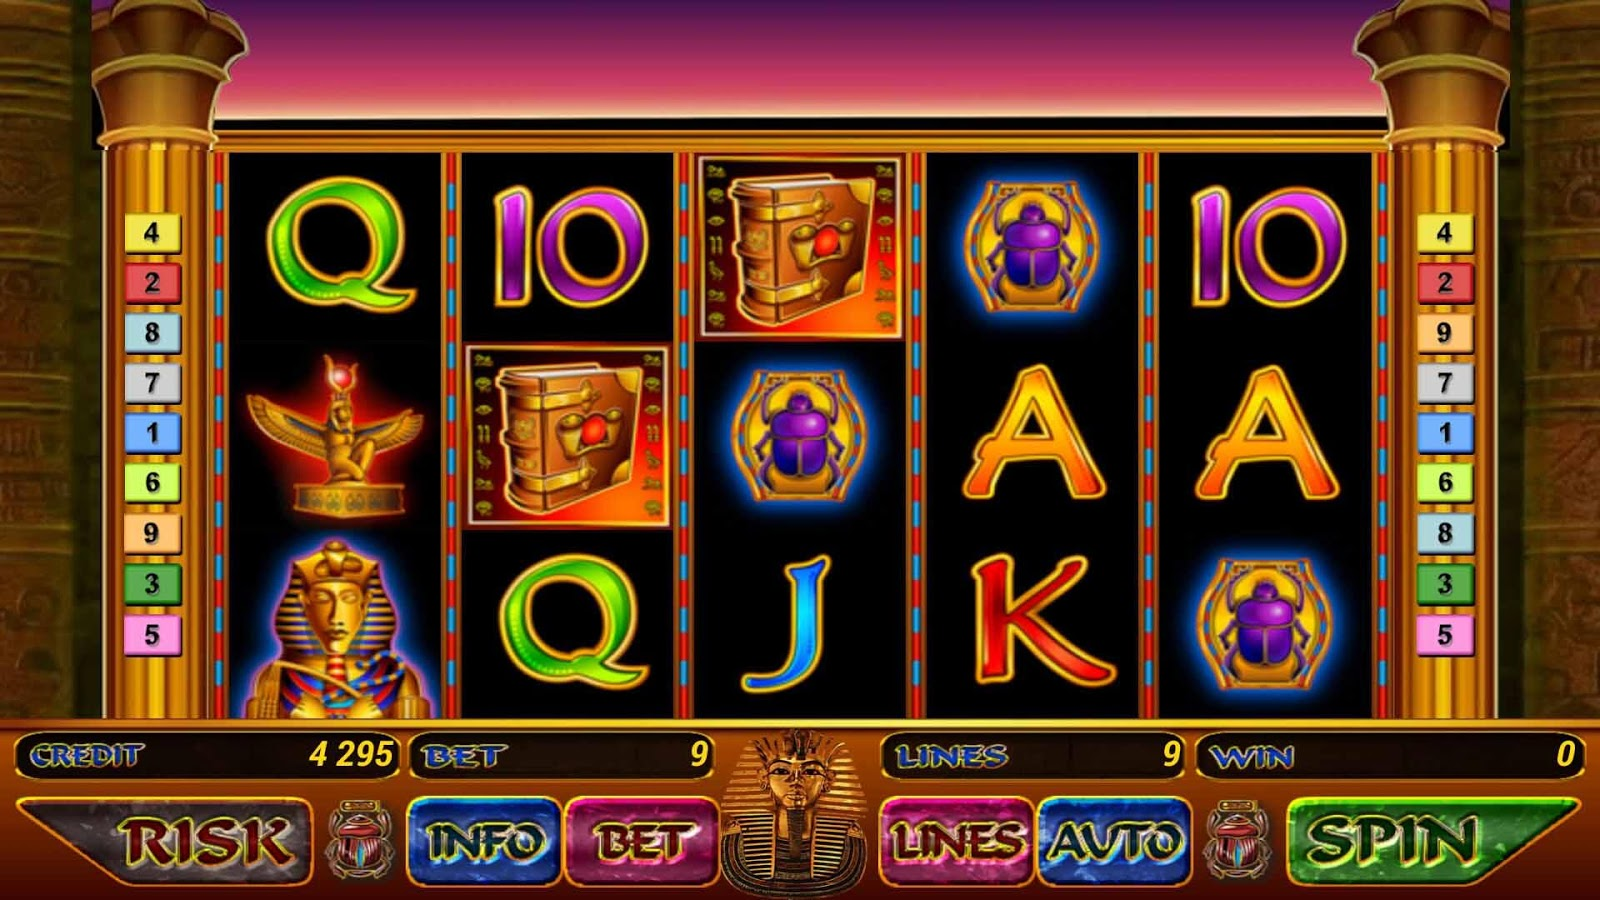 online casino lastschrift free book of ra slot